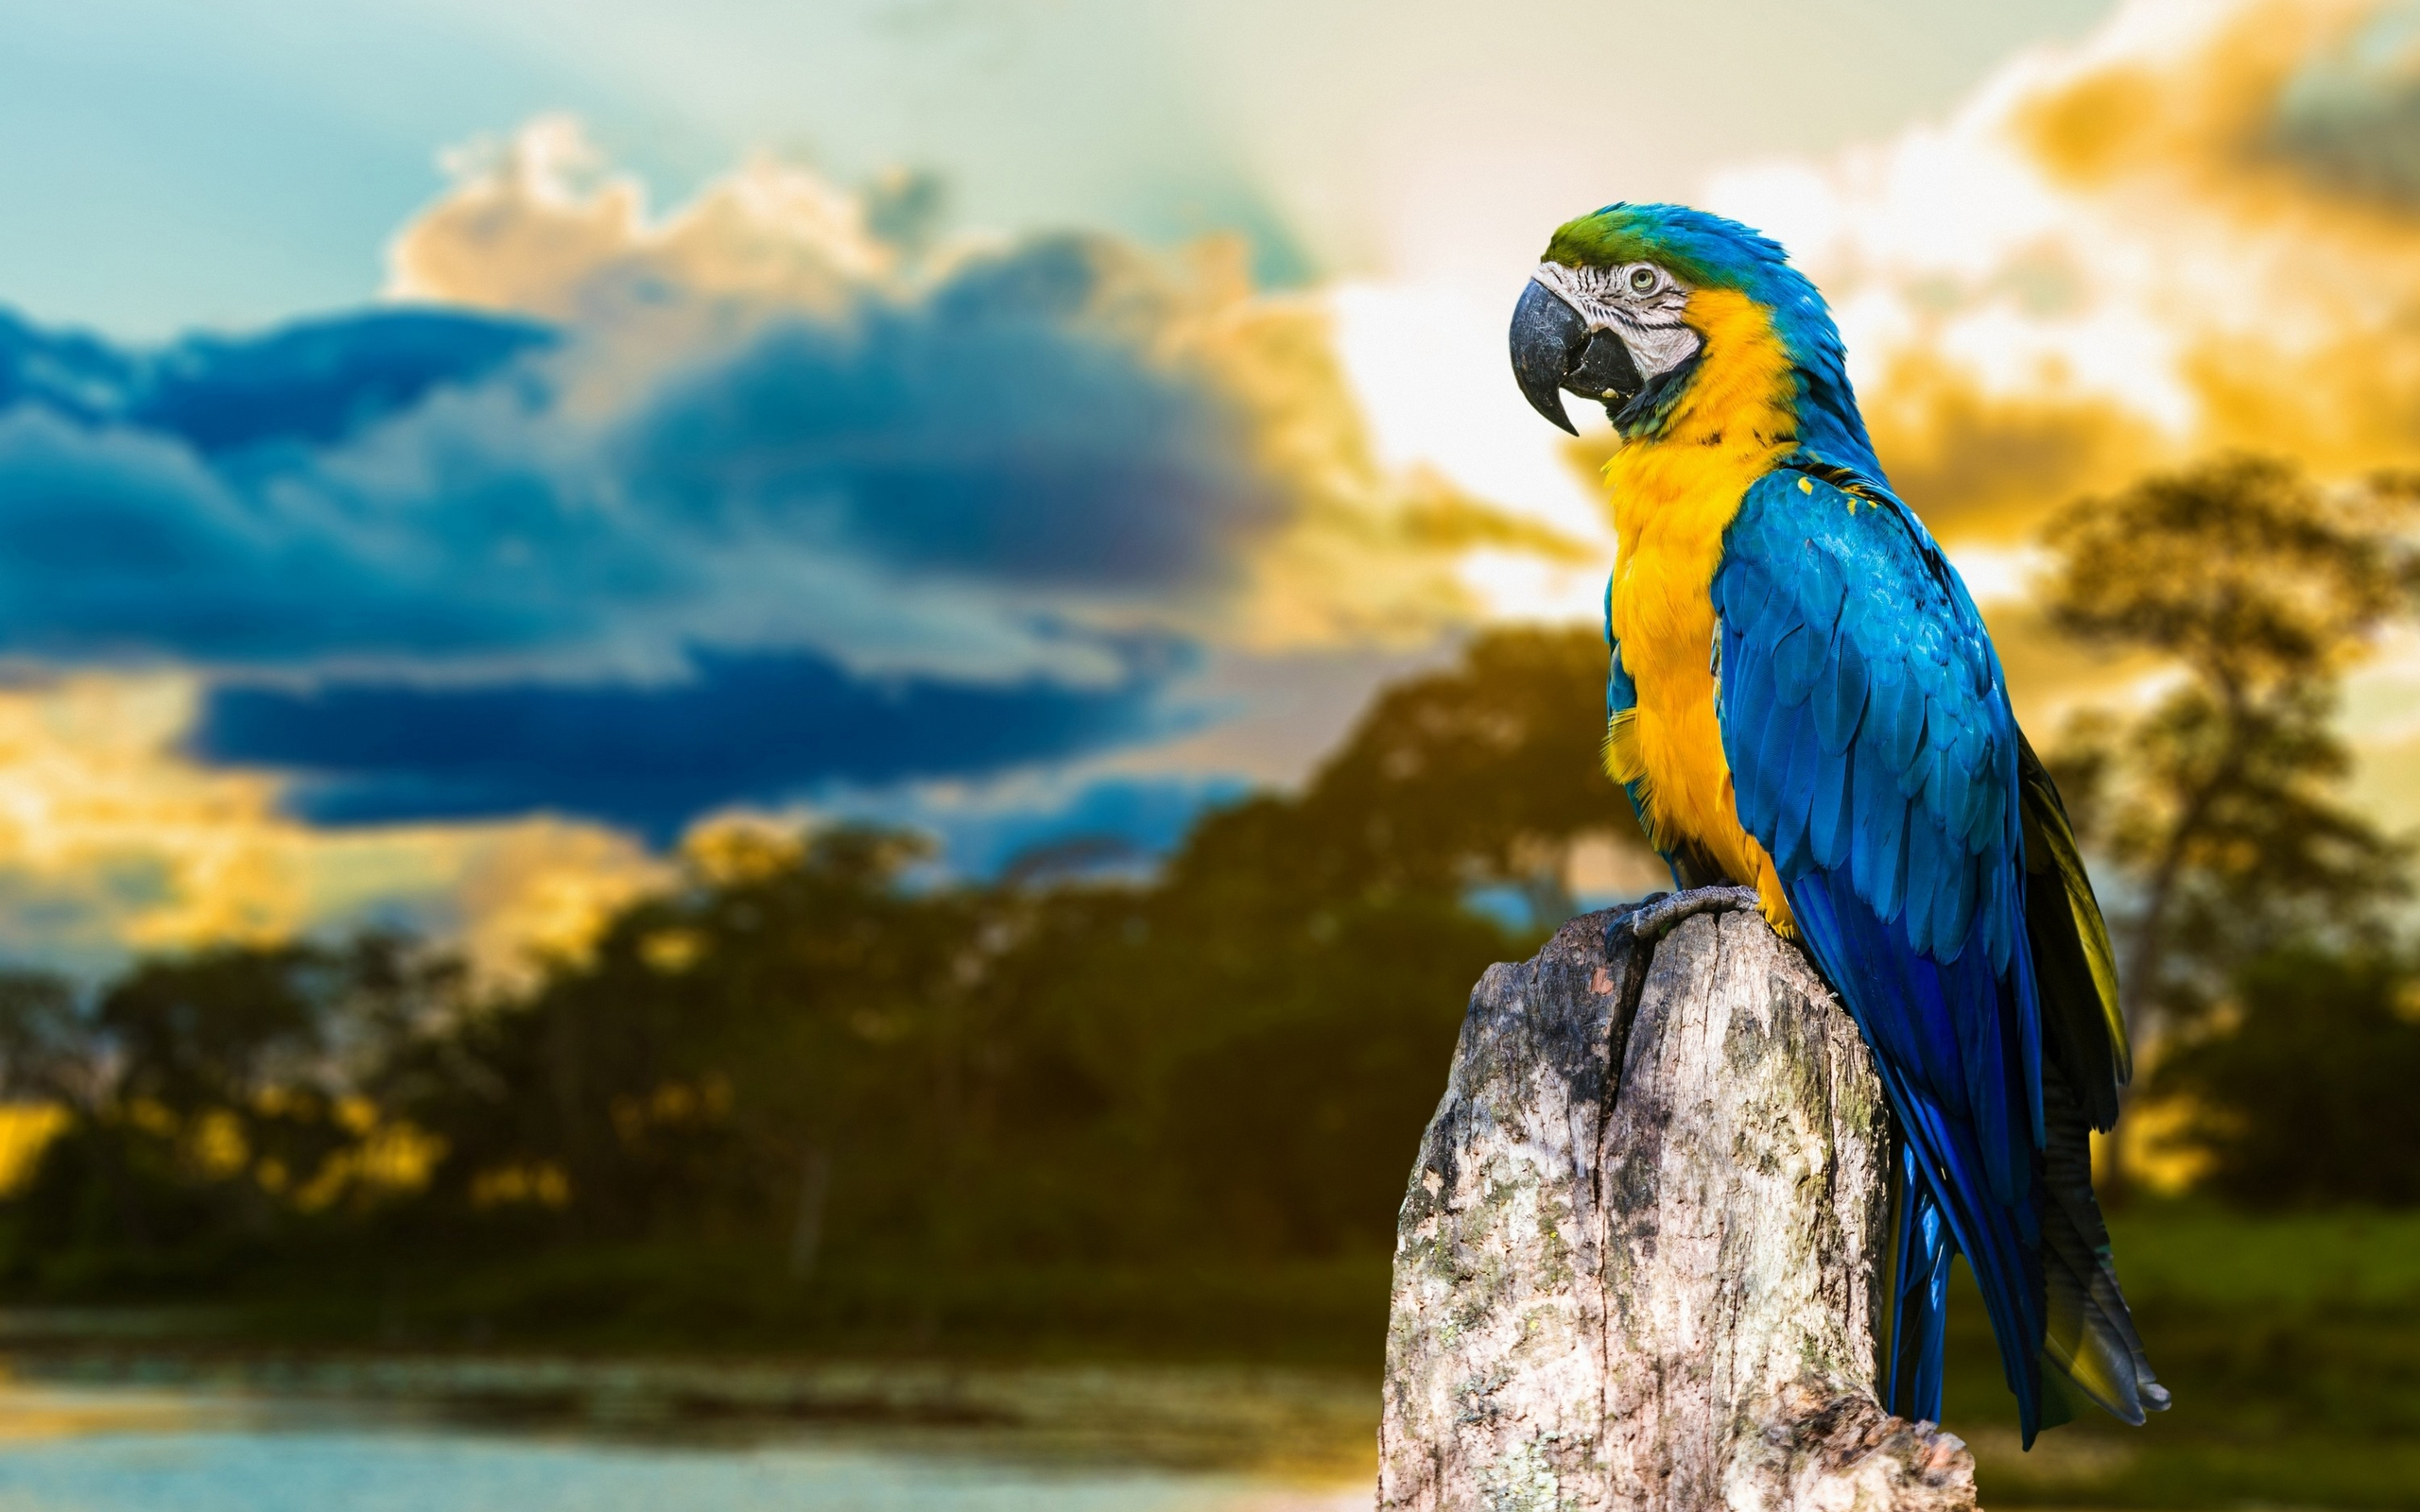 Animal Blue And Yellow Macaw 2560x1600